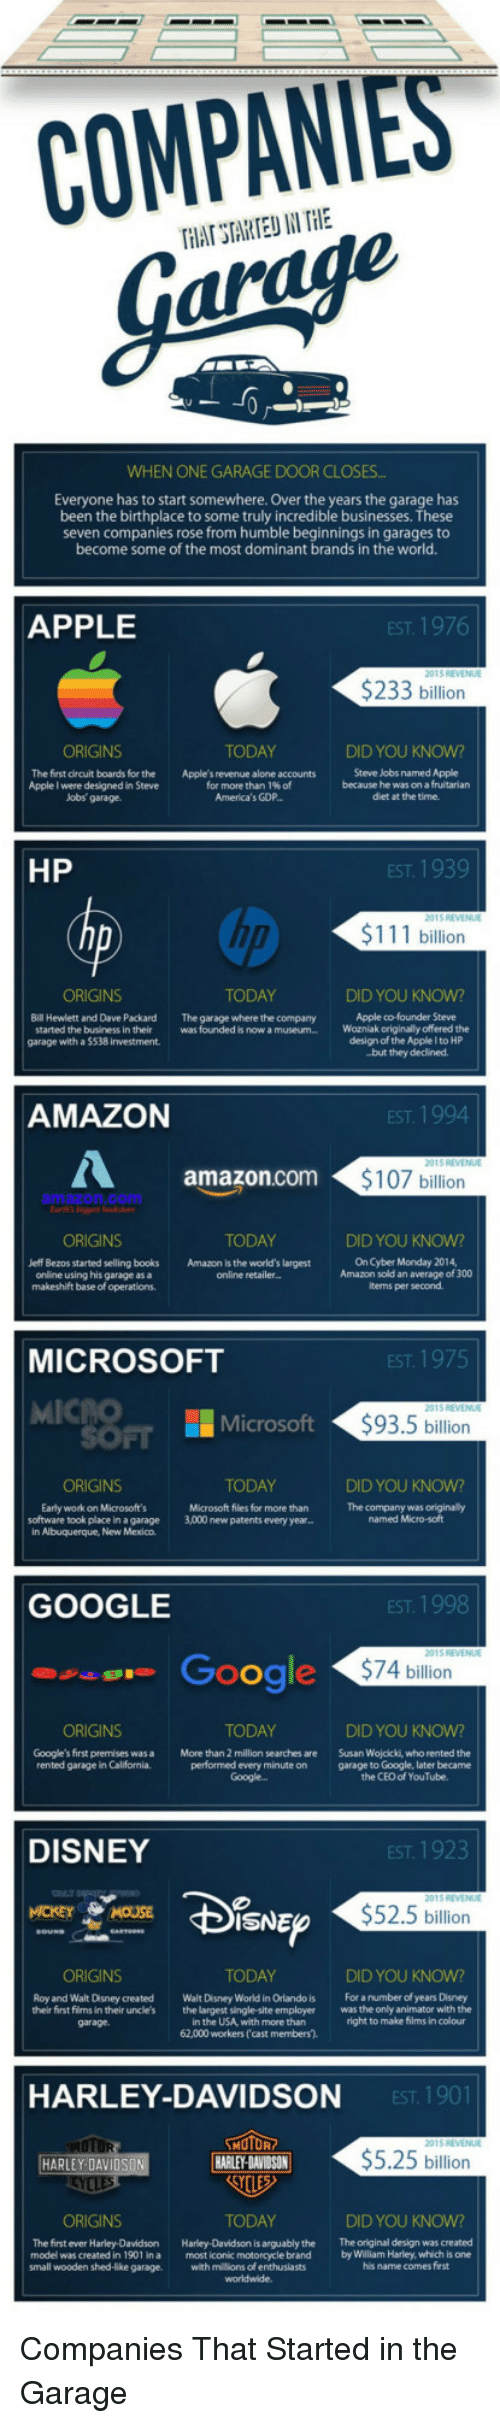 Being Alone, Amazon, and Apple: COMPANIES  THAT STARTED N THE  WHEN ONE GARAGE DOOR CLOSES  Everyone has to start somewhere. Over the years the garage has  seven companies rose from humble beginnings in garages to  been the birthplac  e t  o some truly incredible businesses. These  become some of the most dominant brands in the world.  APPLE  T, 1 976  $233 billion  ORIGINS  TODAY  DID YOU KNOW?  The first circuit boards for the  Apple I were designed in Steve  Jobs garage  Apple's revenue alone accounts  for more than 1% of  America's GDP  Steve Jobs named Apple  because he was on a fruitarian  diet at the time.  HP  T, 1 939  111 billion  ORIGINS  Bill Hewlett and Dave Packard  garage with a $538 investment  TODAY  DID YOU KNOW?  Apple co-founder Steve  design of the Apple l to HP  The  garage where the  started the business in their was founded is now a museum.. Woazniak originally offered the  .but they declined.  AMAZON  EST. 1994  amazon.com  $107 billion  mazon.com  ORIGINS  TODAY  DID YOU KNOW?  Jeff Bezos started selling books  online using his garage as a  makeshift base of operations.  Amazon is the world's largest  online retailer..  On Cyber Monday 2014,  Amazon sold an average of 300  tems per second  MICROSOFT  т, 1 975  MICRO  $93.5 billion  SOFT  ORIGINS  DID YOU KNOW?  Early work on Microsoft's  software took place in a garage  in Albuquerque, New Mexico.  Microsoft files for more than  3,000 new patents every year  The company was originally  named Micro-soft  GOOGLE  EST. 1998  Google  4 billion  ORIGINS  TODAY  DID YOU KNOW?  Google's first premises was a More than 2 million searches are Susan Wojcicki, who rented the  performed every minute on  Google...  garage to Google, later became  the CEO of YouTube.  rented garage in California.  DISNEY  Т. 1 923  MICKEY MOUSE  ISNE  $52.5 billion  ORIGINS  DID YOU KNOW?  Roy and Walt Disney created  their first films in their uncle's  garage  Walt Disney World in Orlando is  the largest single-site empl